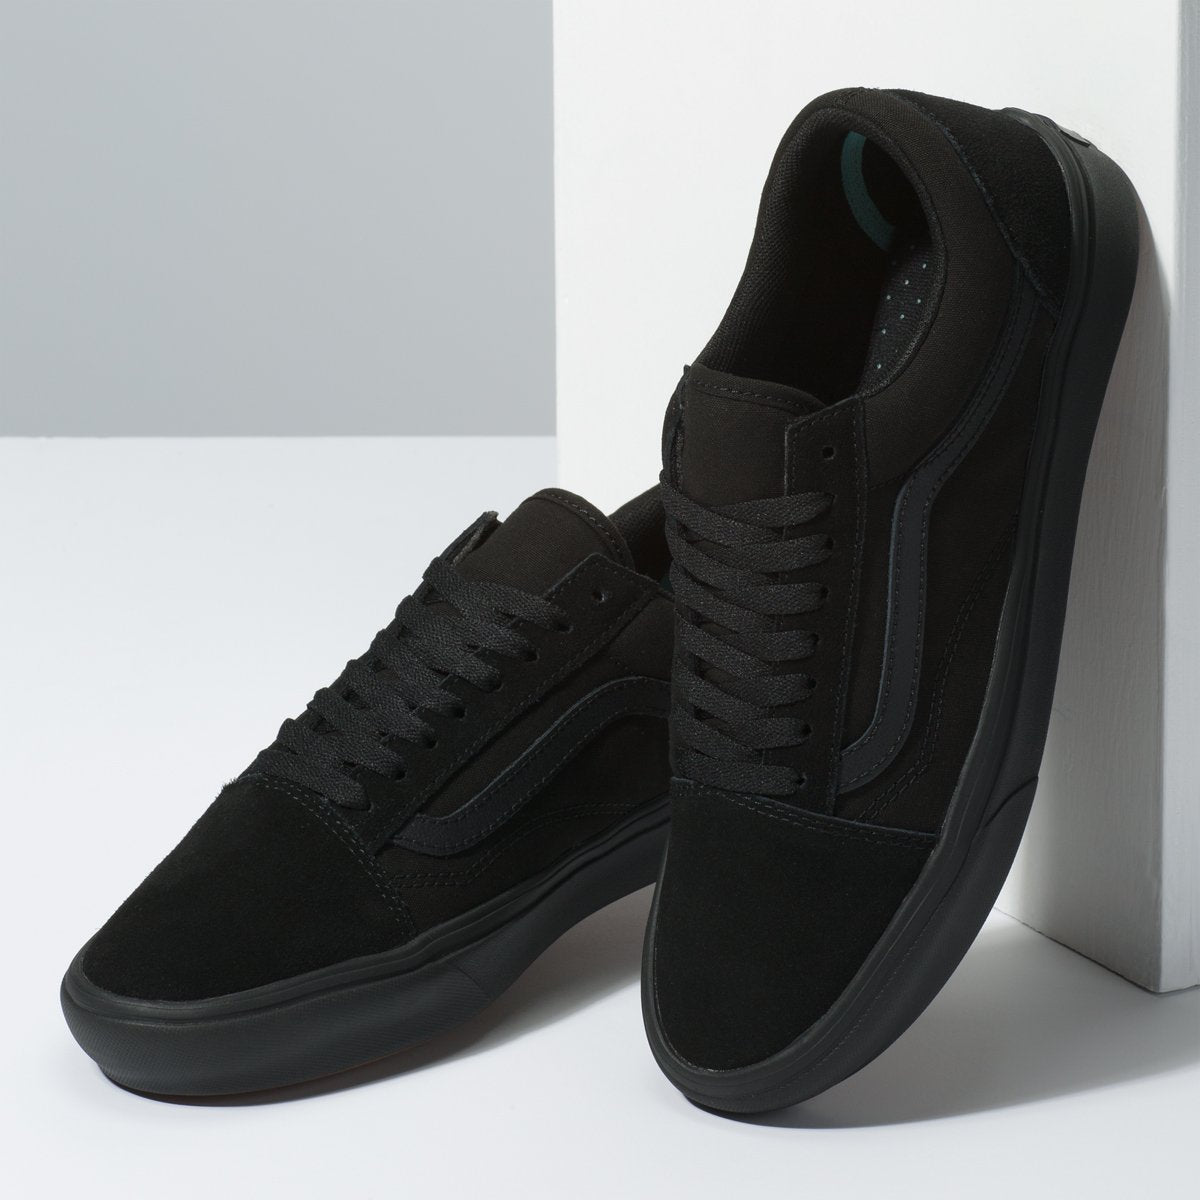 Zapatillas Vans ComfyCush Old Skool - Black/Black - Vans